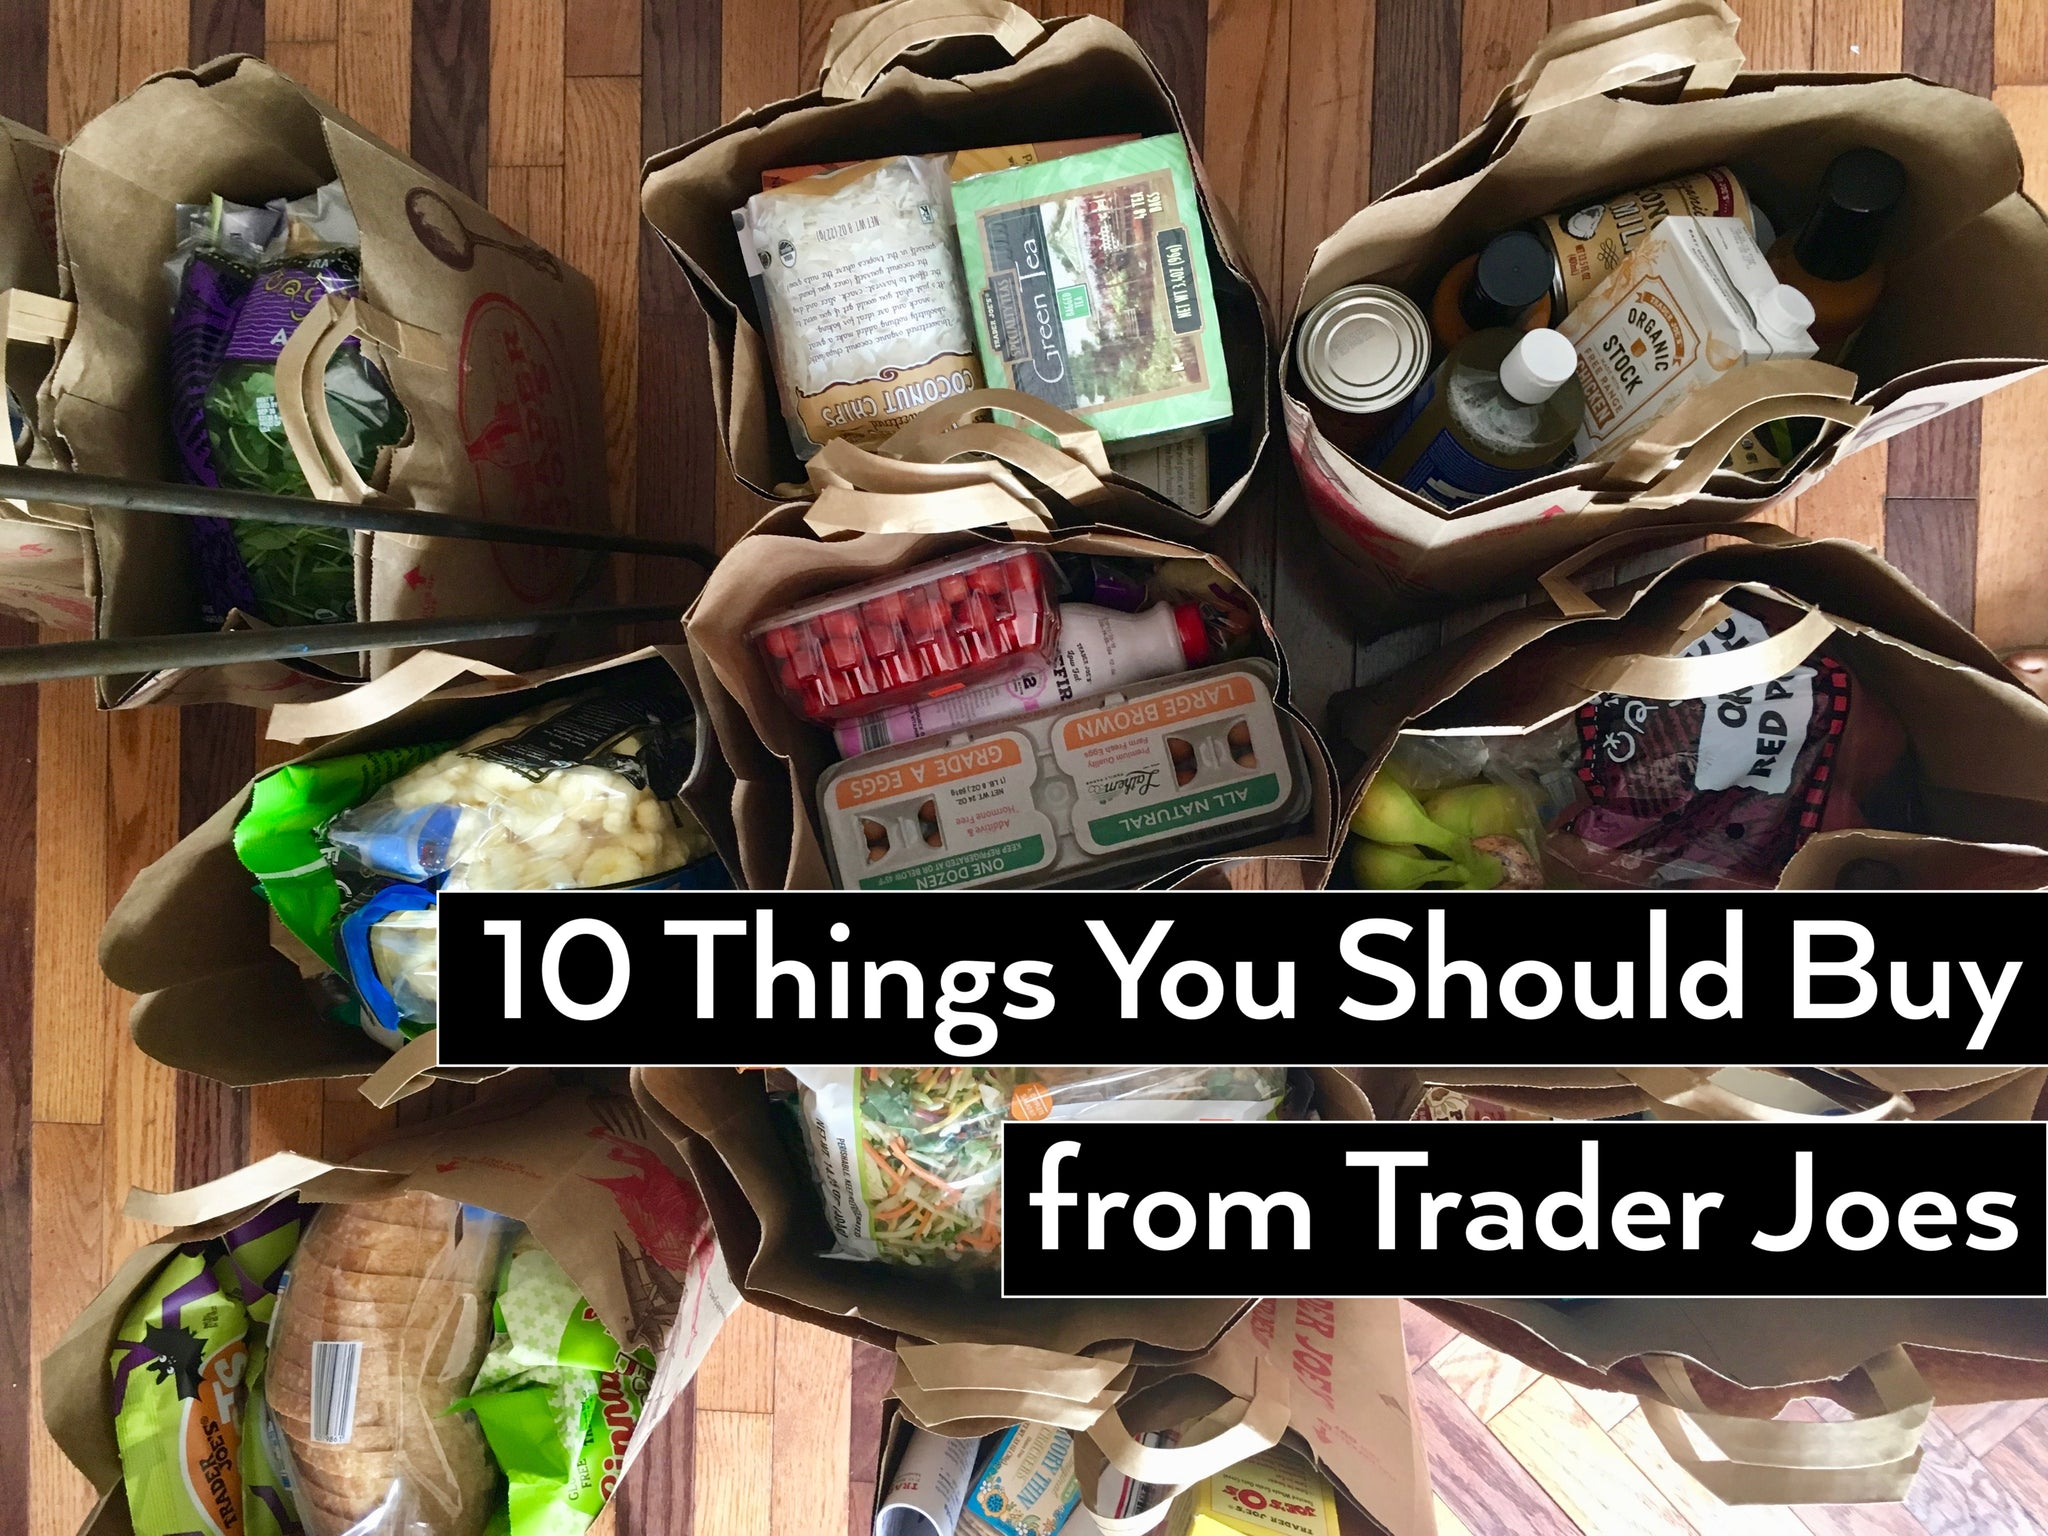 10 Things You Should Buy From Trader Joes